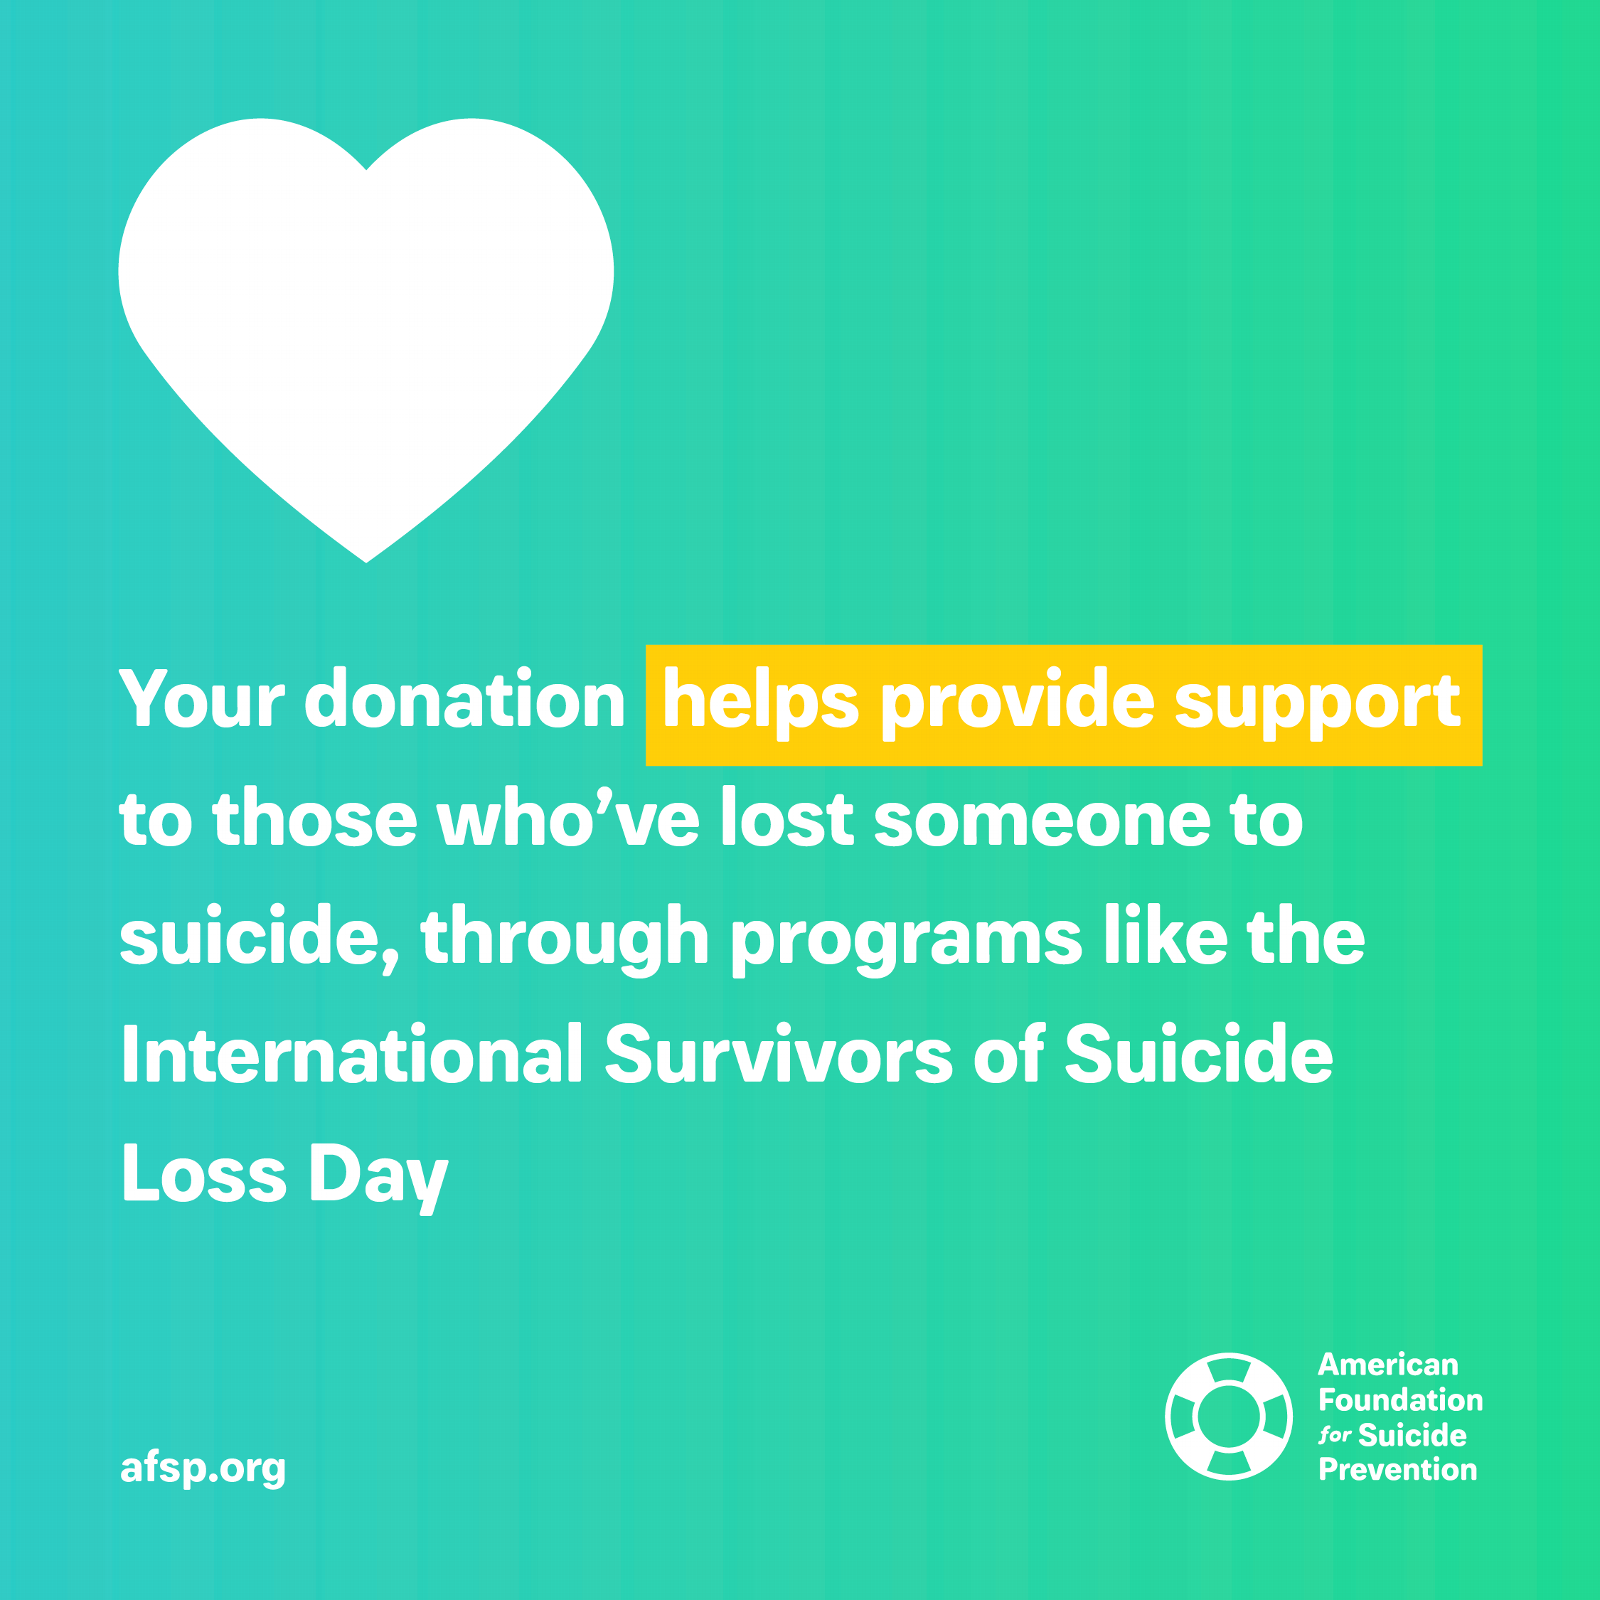 Your donation helps provide support to those who've lost someone to suicide, through programs like the International Survivors of Suicide Loss Day.